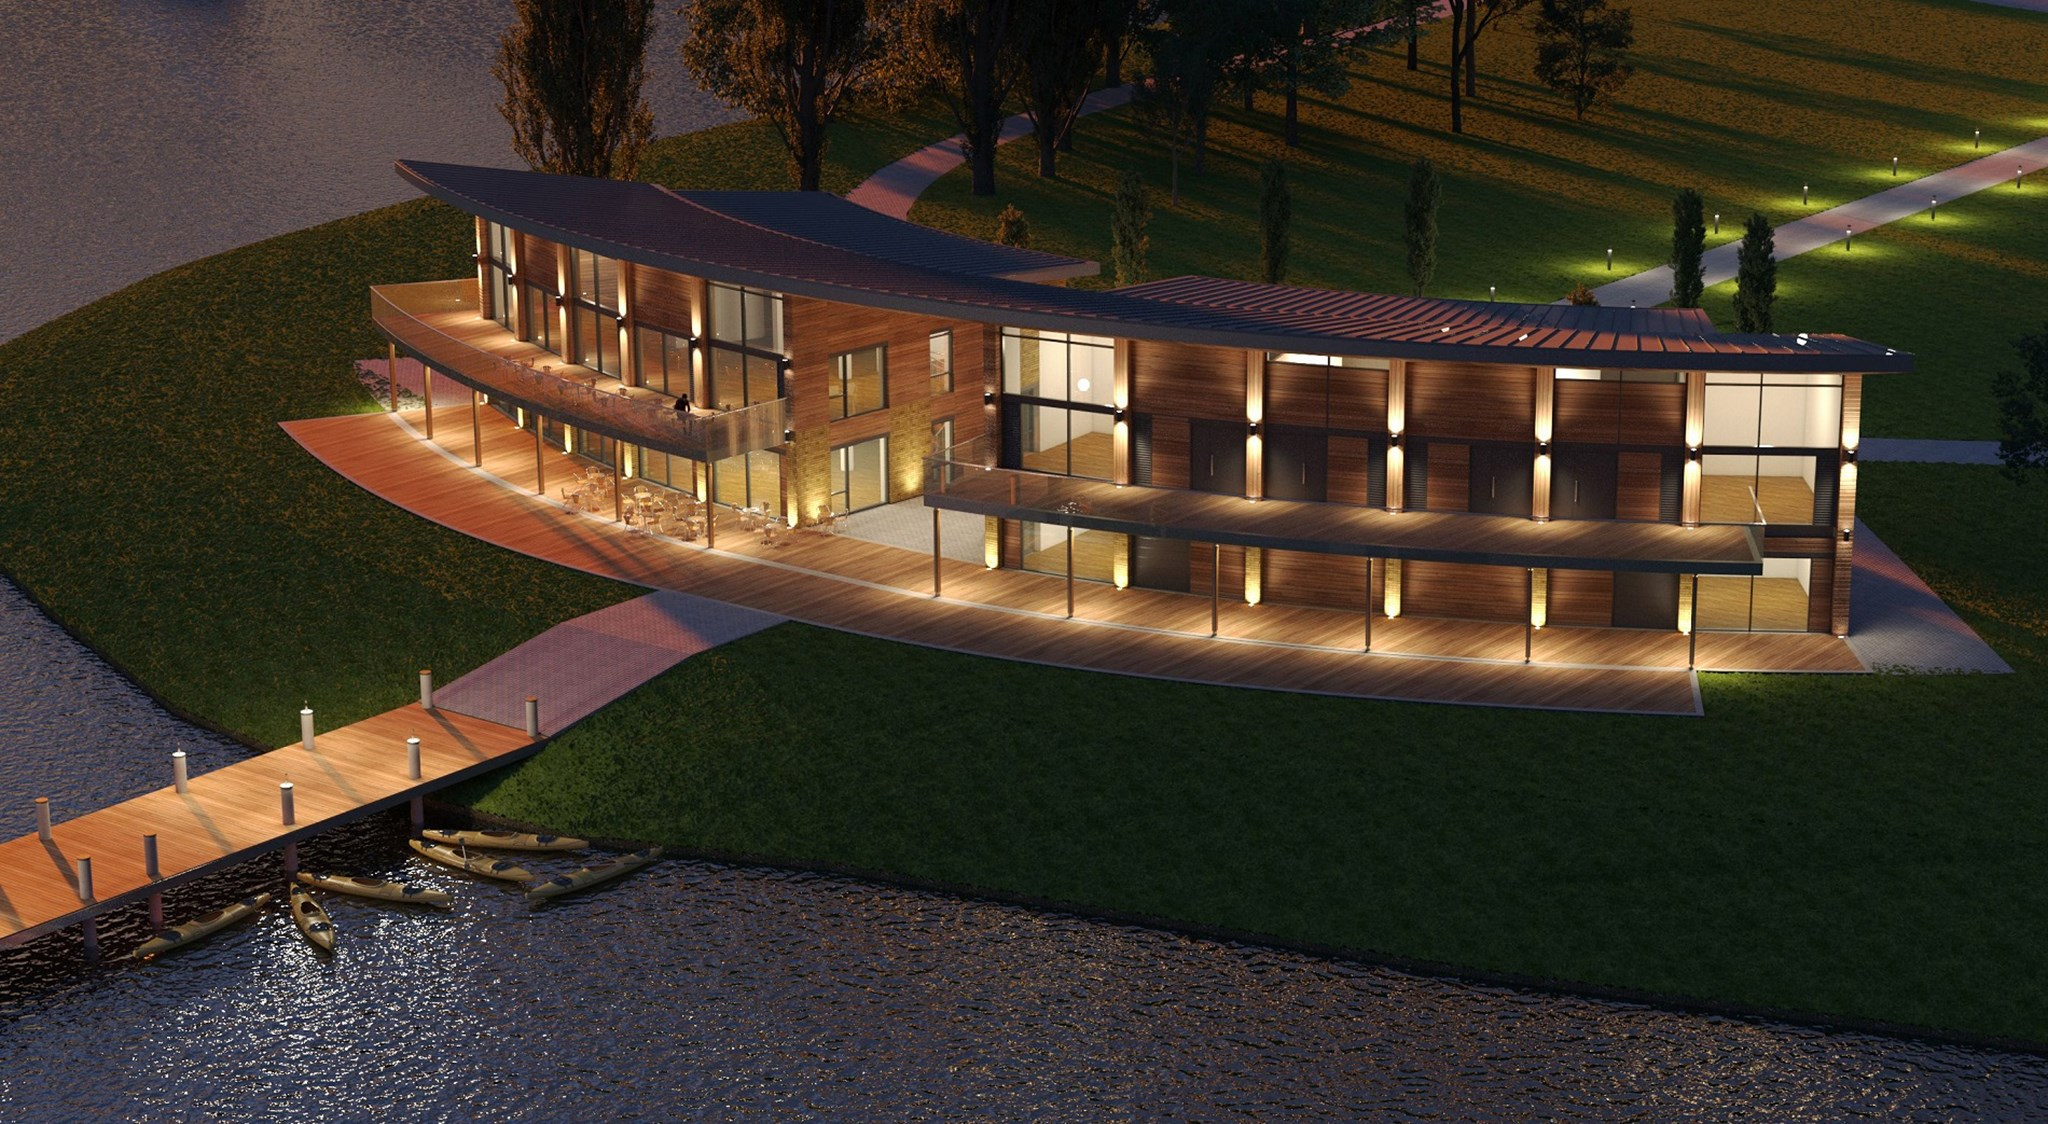 Image one - artist impression of new building - banner.jpg